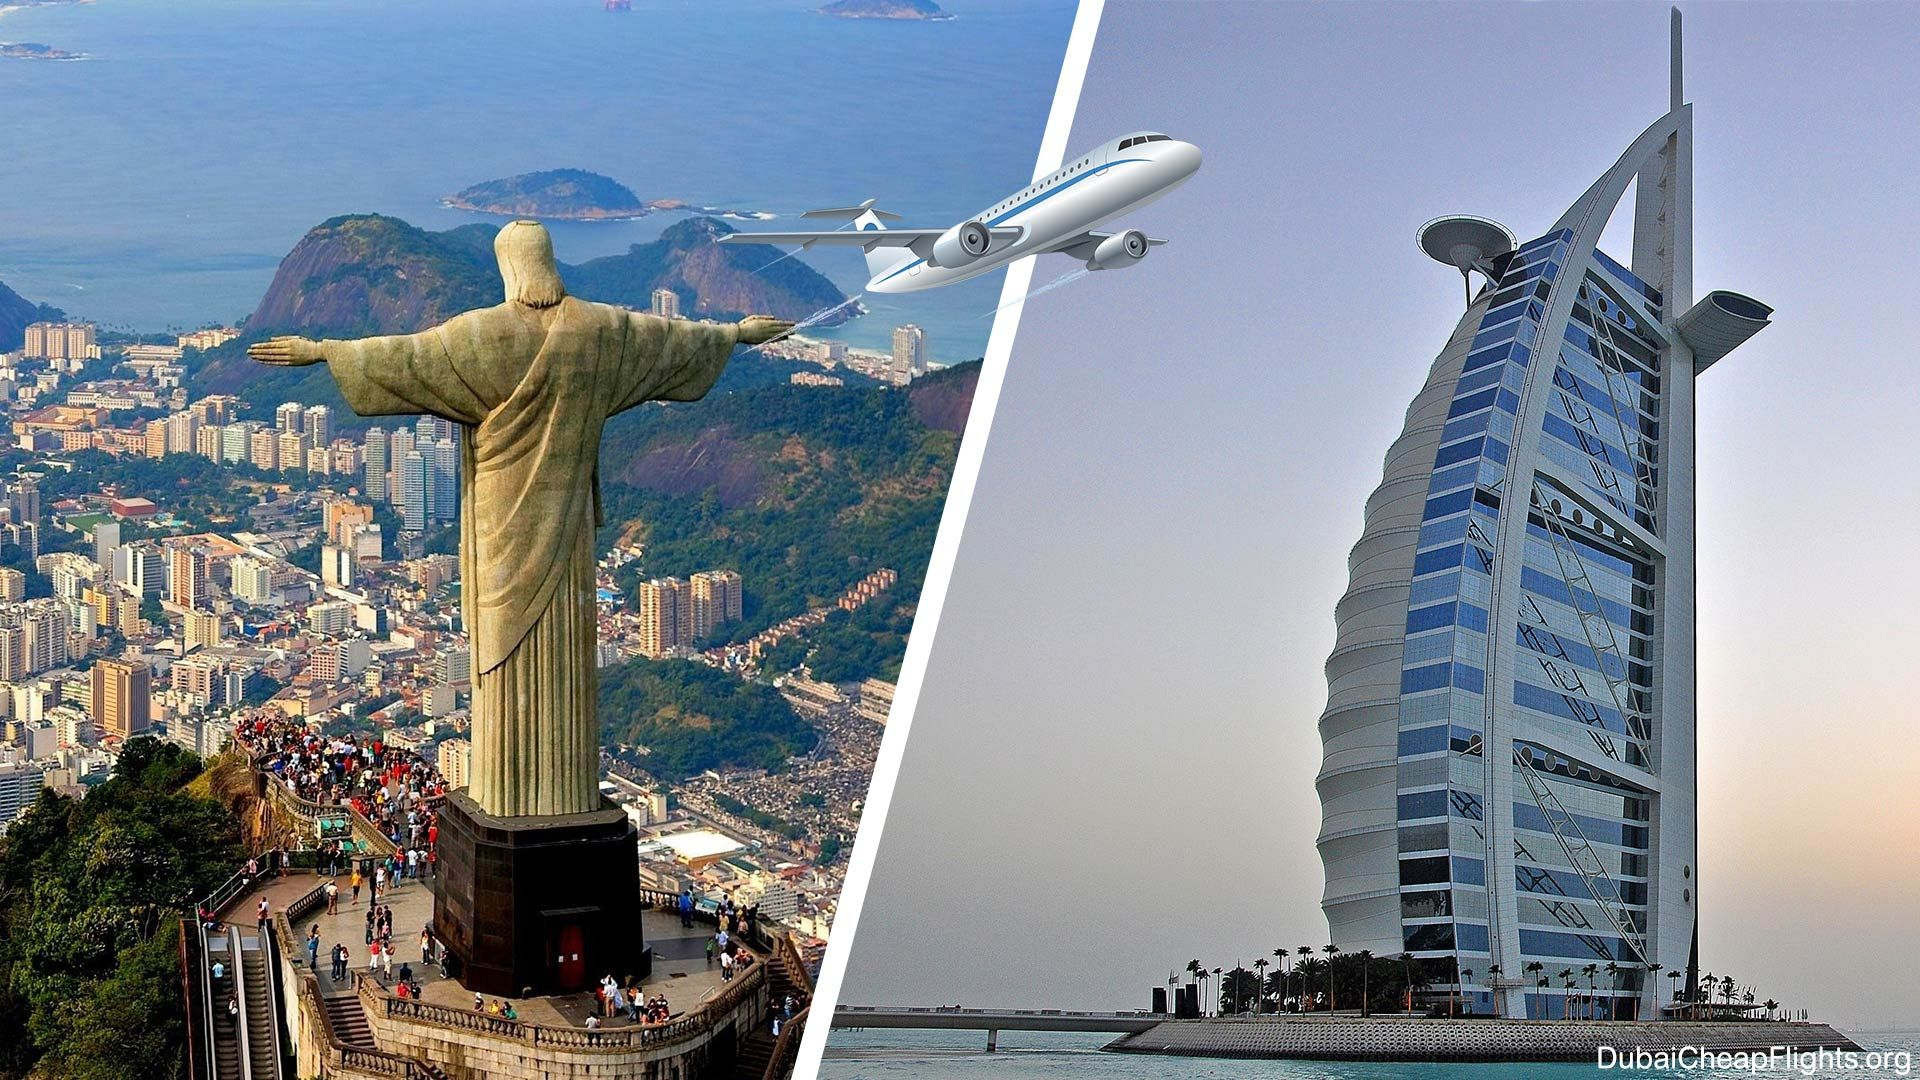 Find Cheap Flights from Rio De Janeiro to Dubai with great value prices on tickets and hotels.. Search and compare Cheap Flights from Rio De Janeiro to Dubai across multiple online travel airlines with one click. Book Your Next Trip Today.. Book Now!